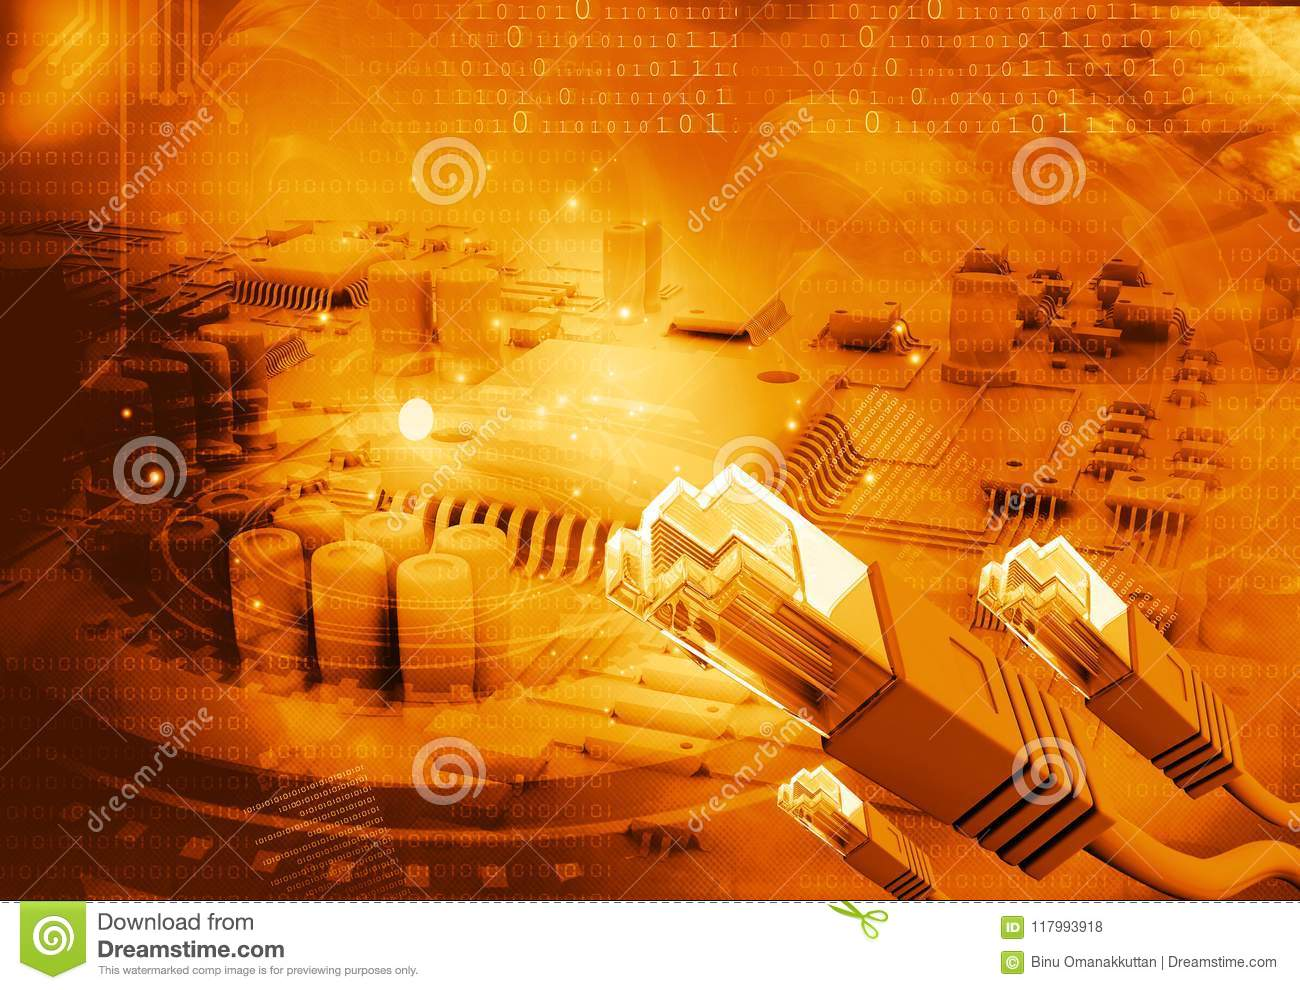 Network Cable On Circuit Board Stock Photo Image Of Schematic Download Modern 117993918